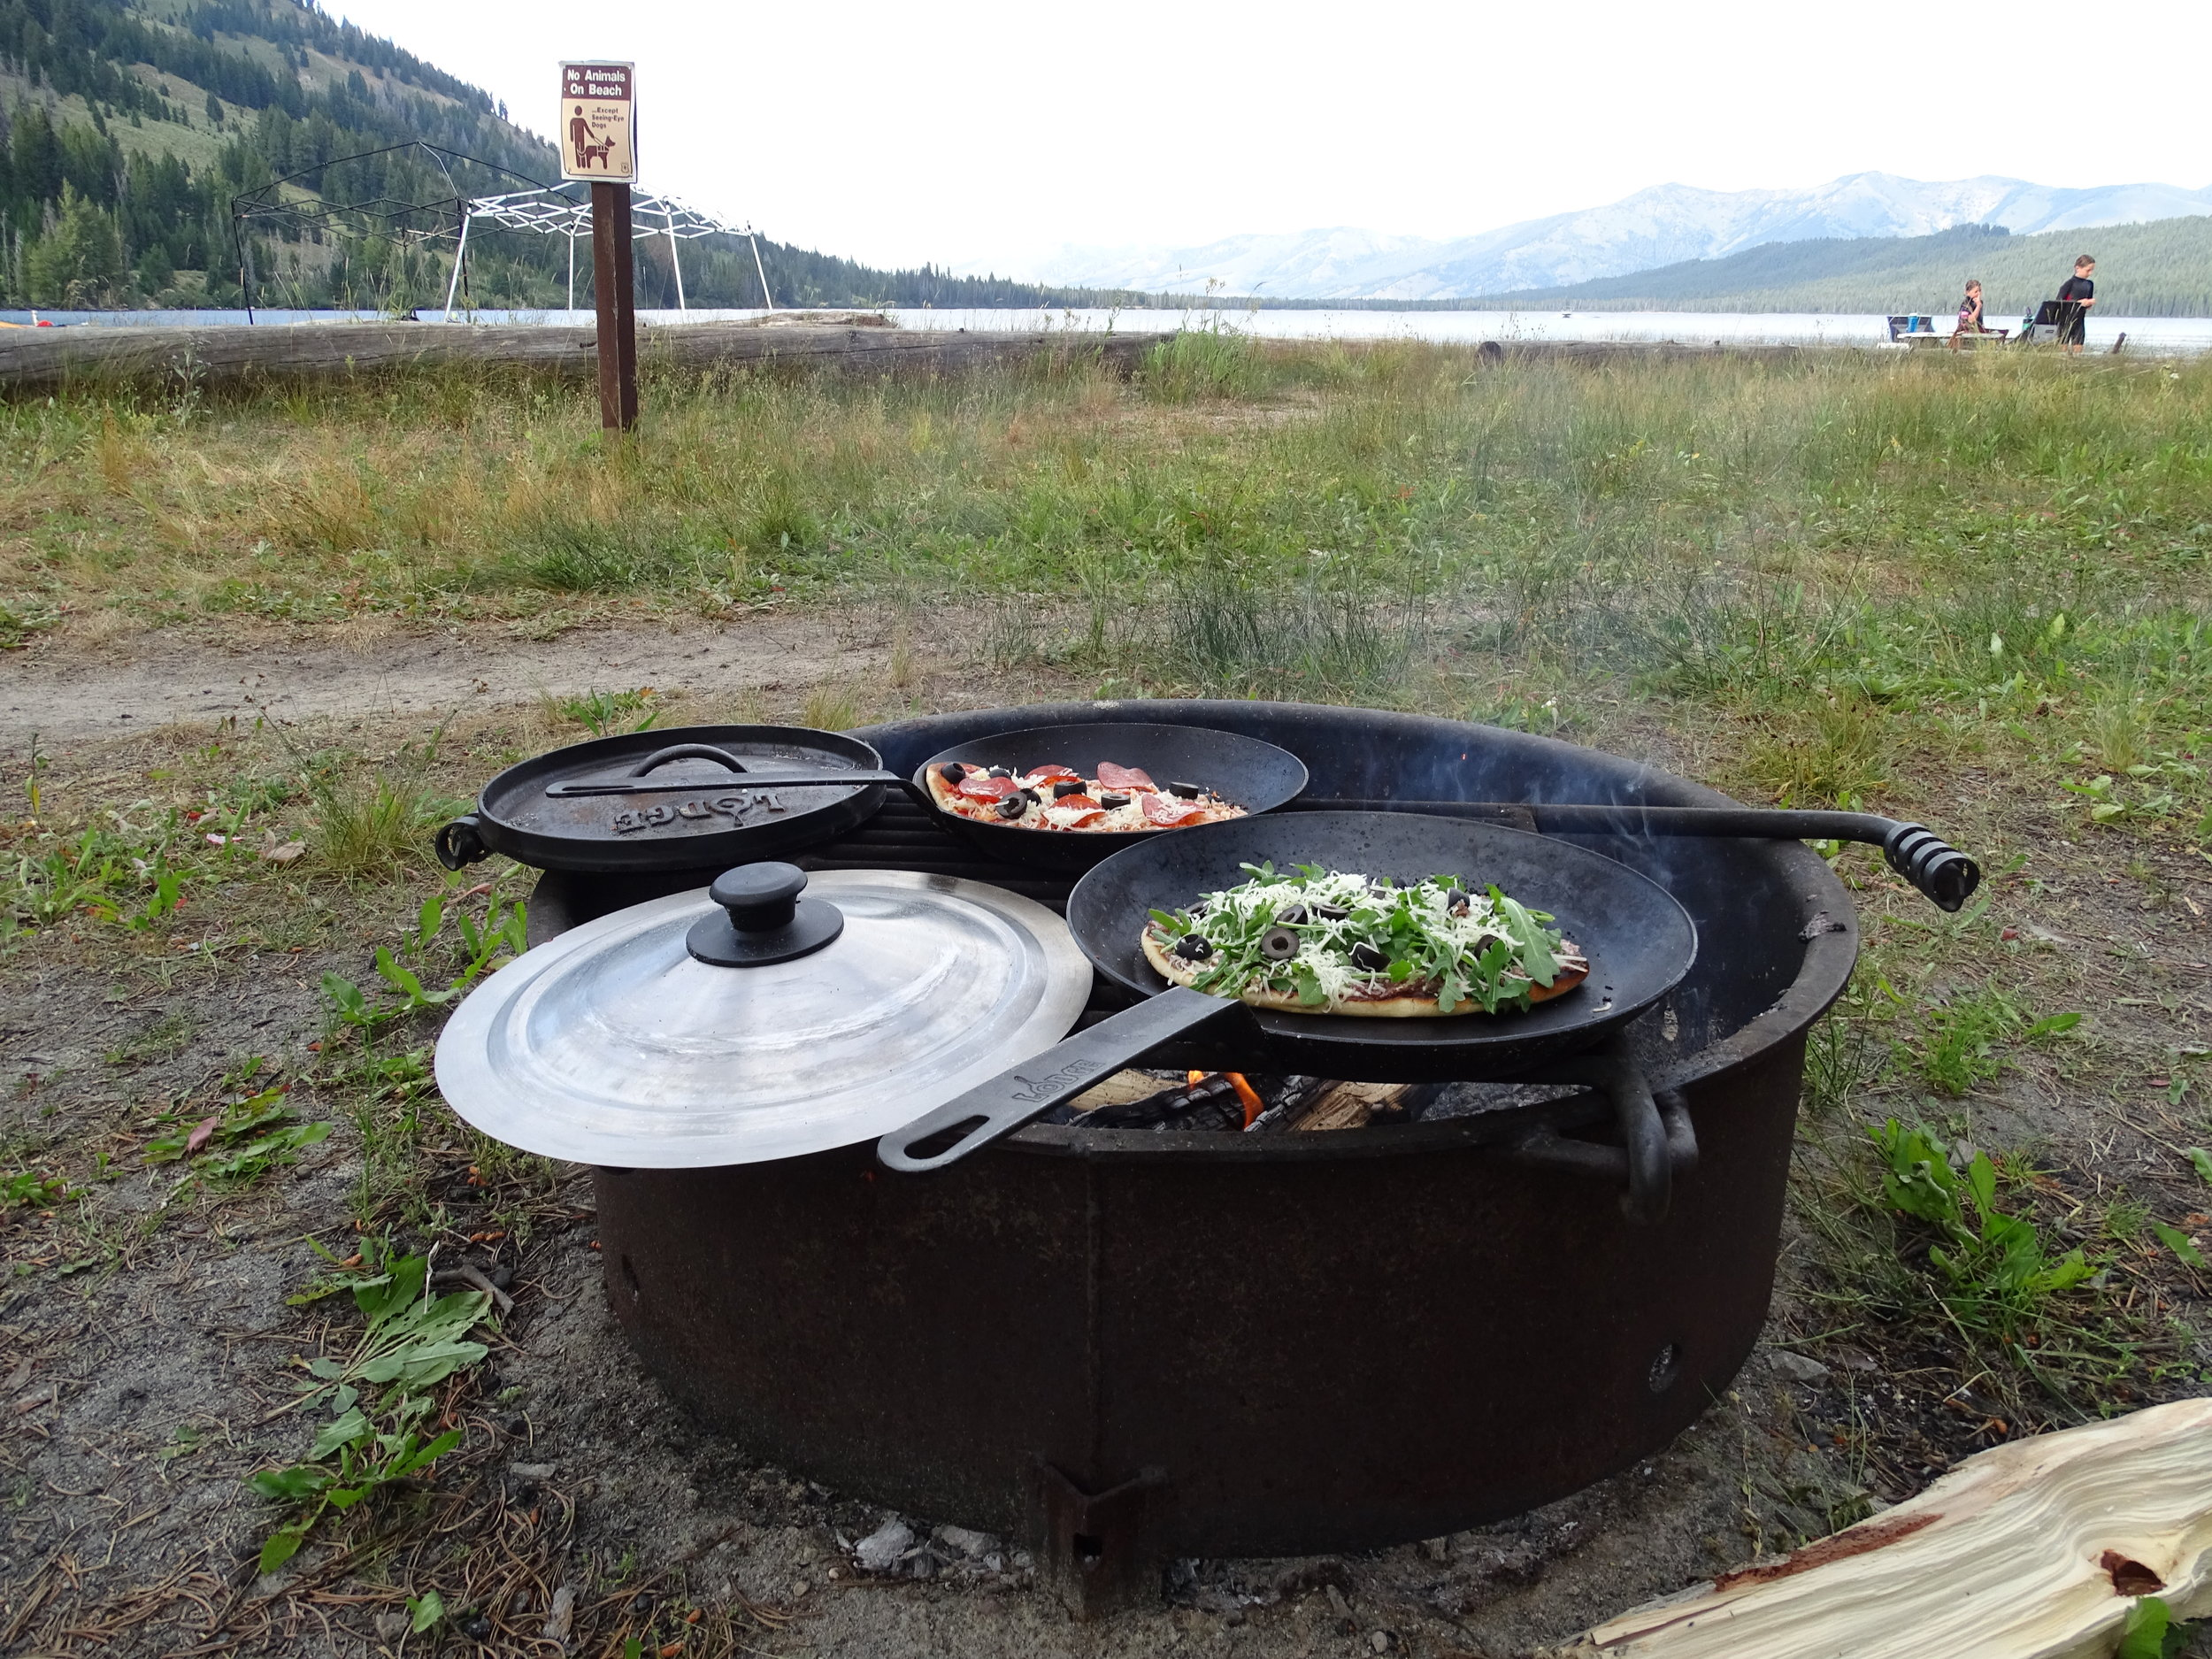 Nothing like some delicious campfire pizza!